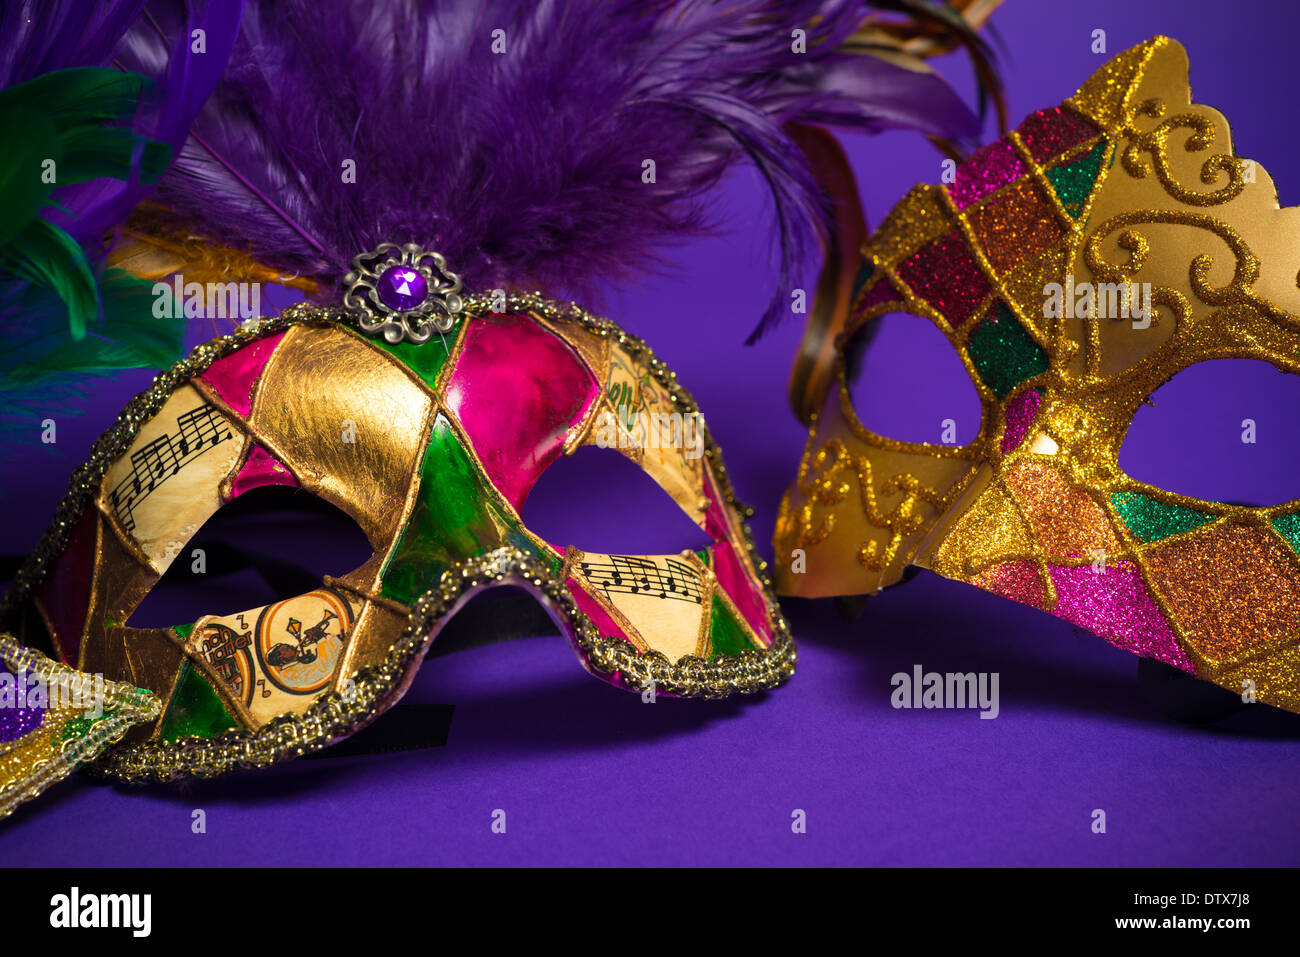 Festive Grouping of mardi gras, venetian or carnivale mask on a purple background - Stock Image